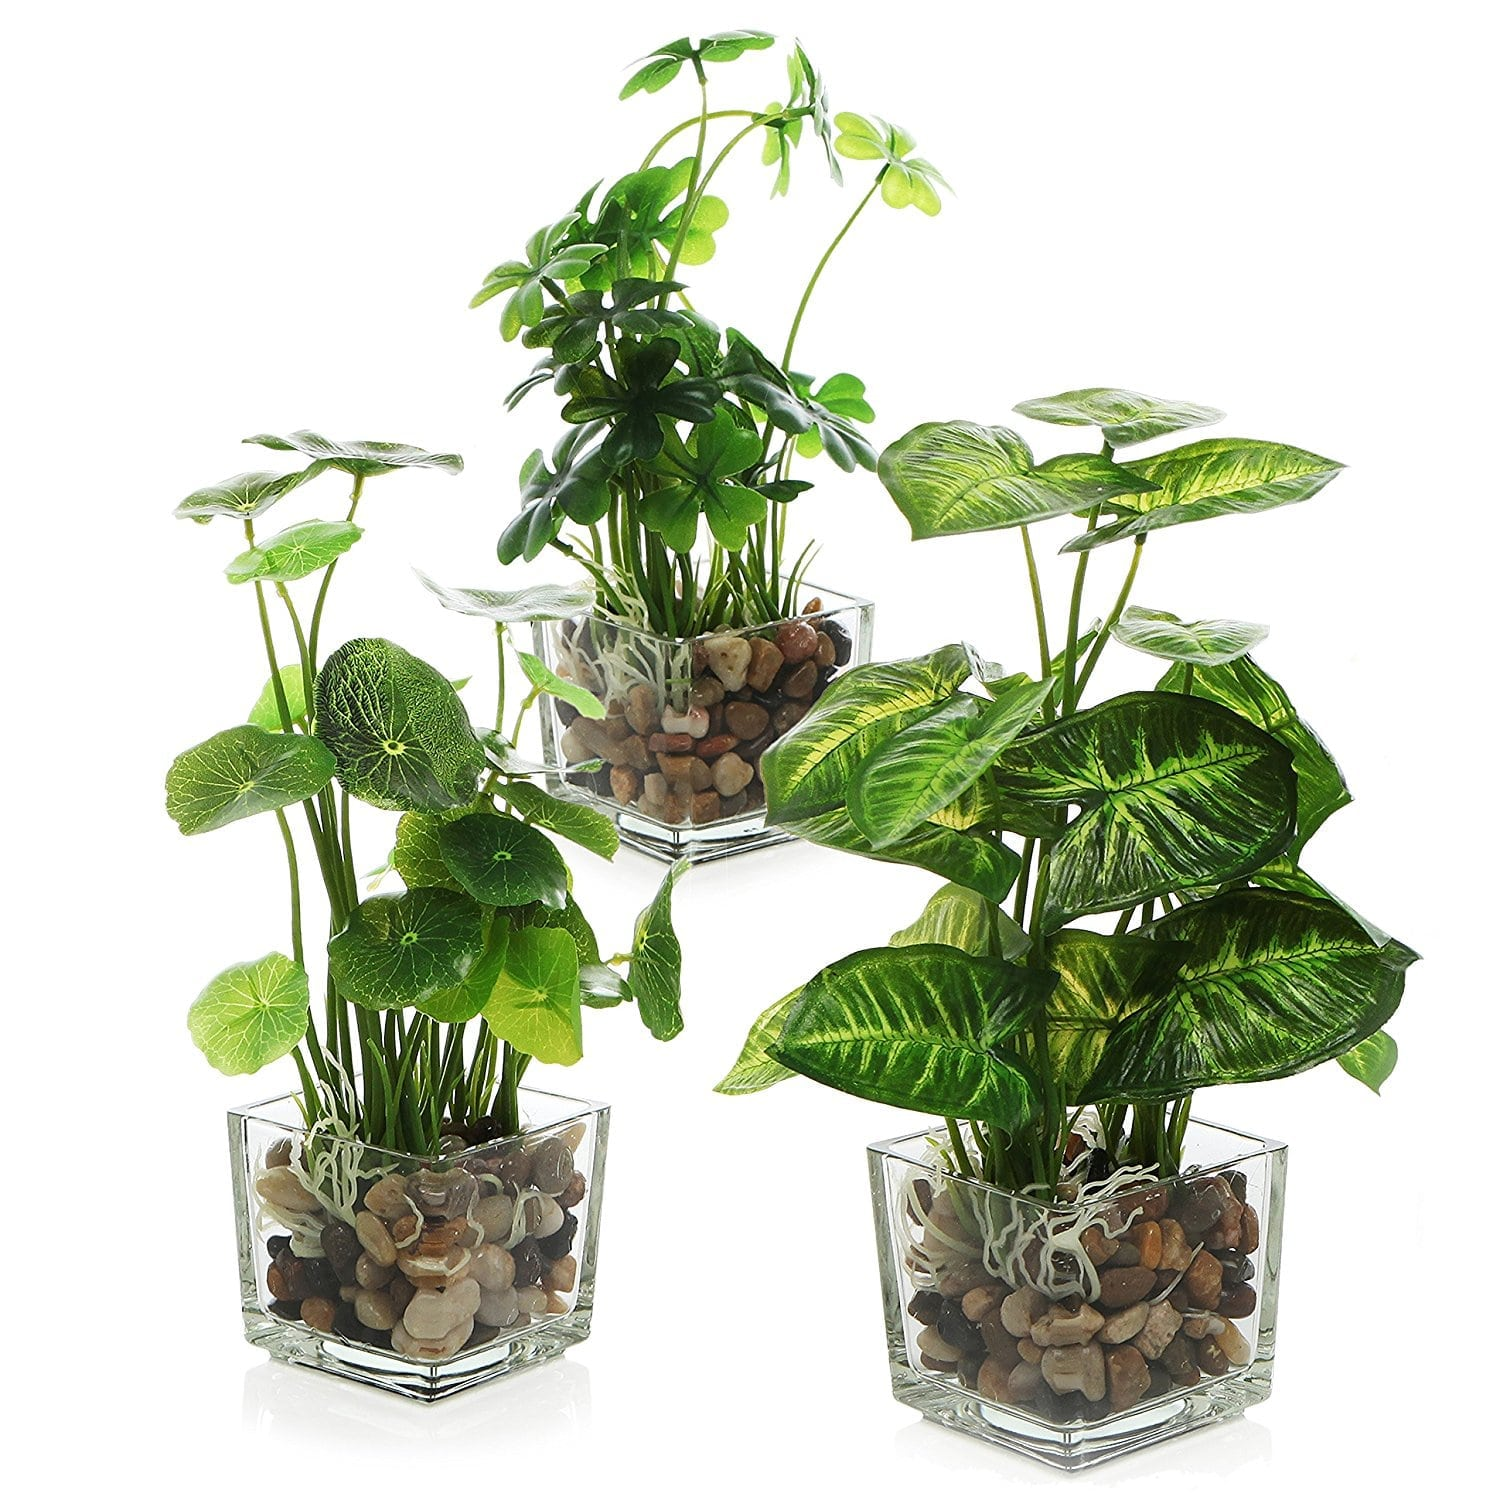 Decorating With Faux Plants   Faux Tabletop Plants In Glass Pots